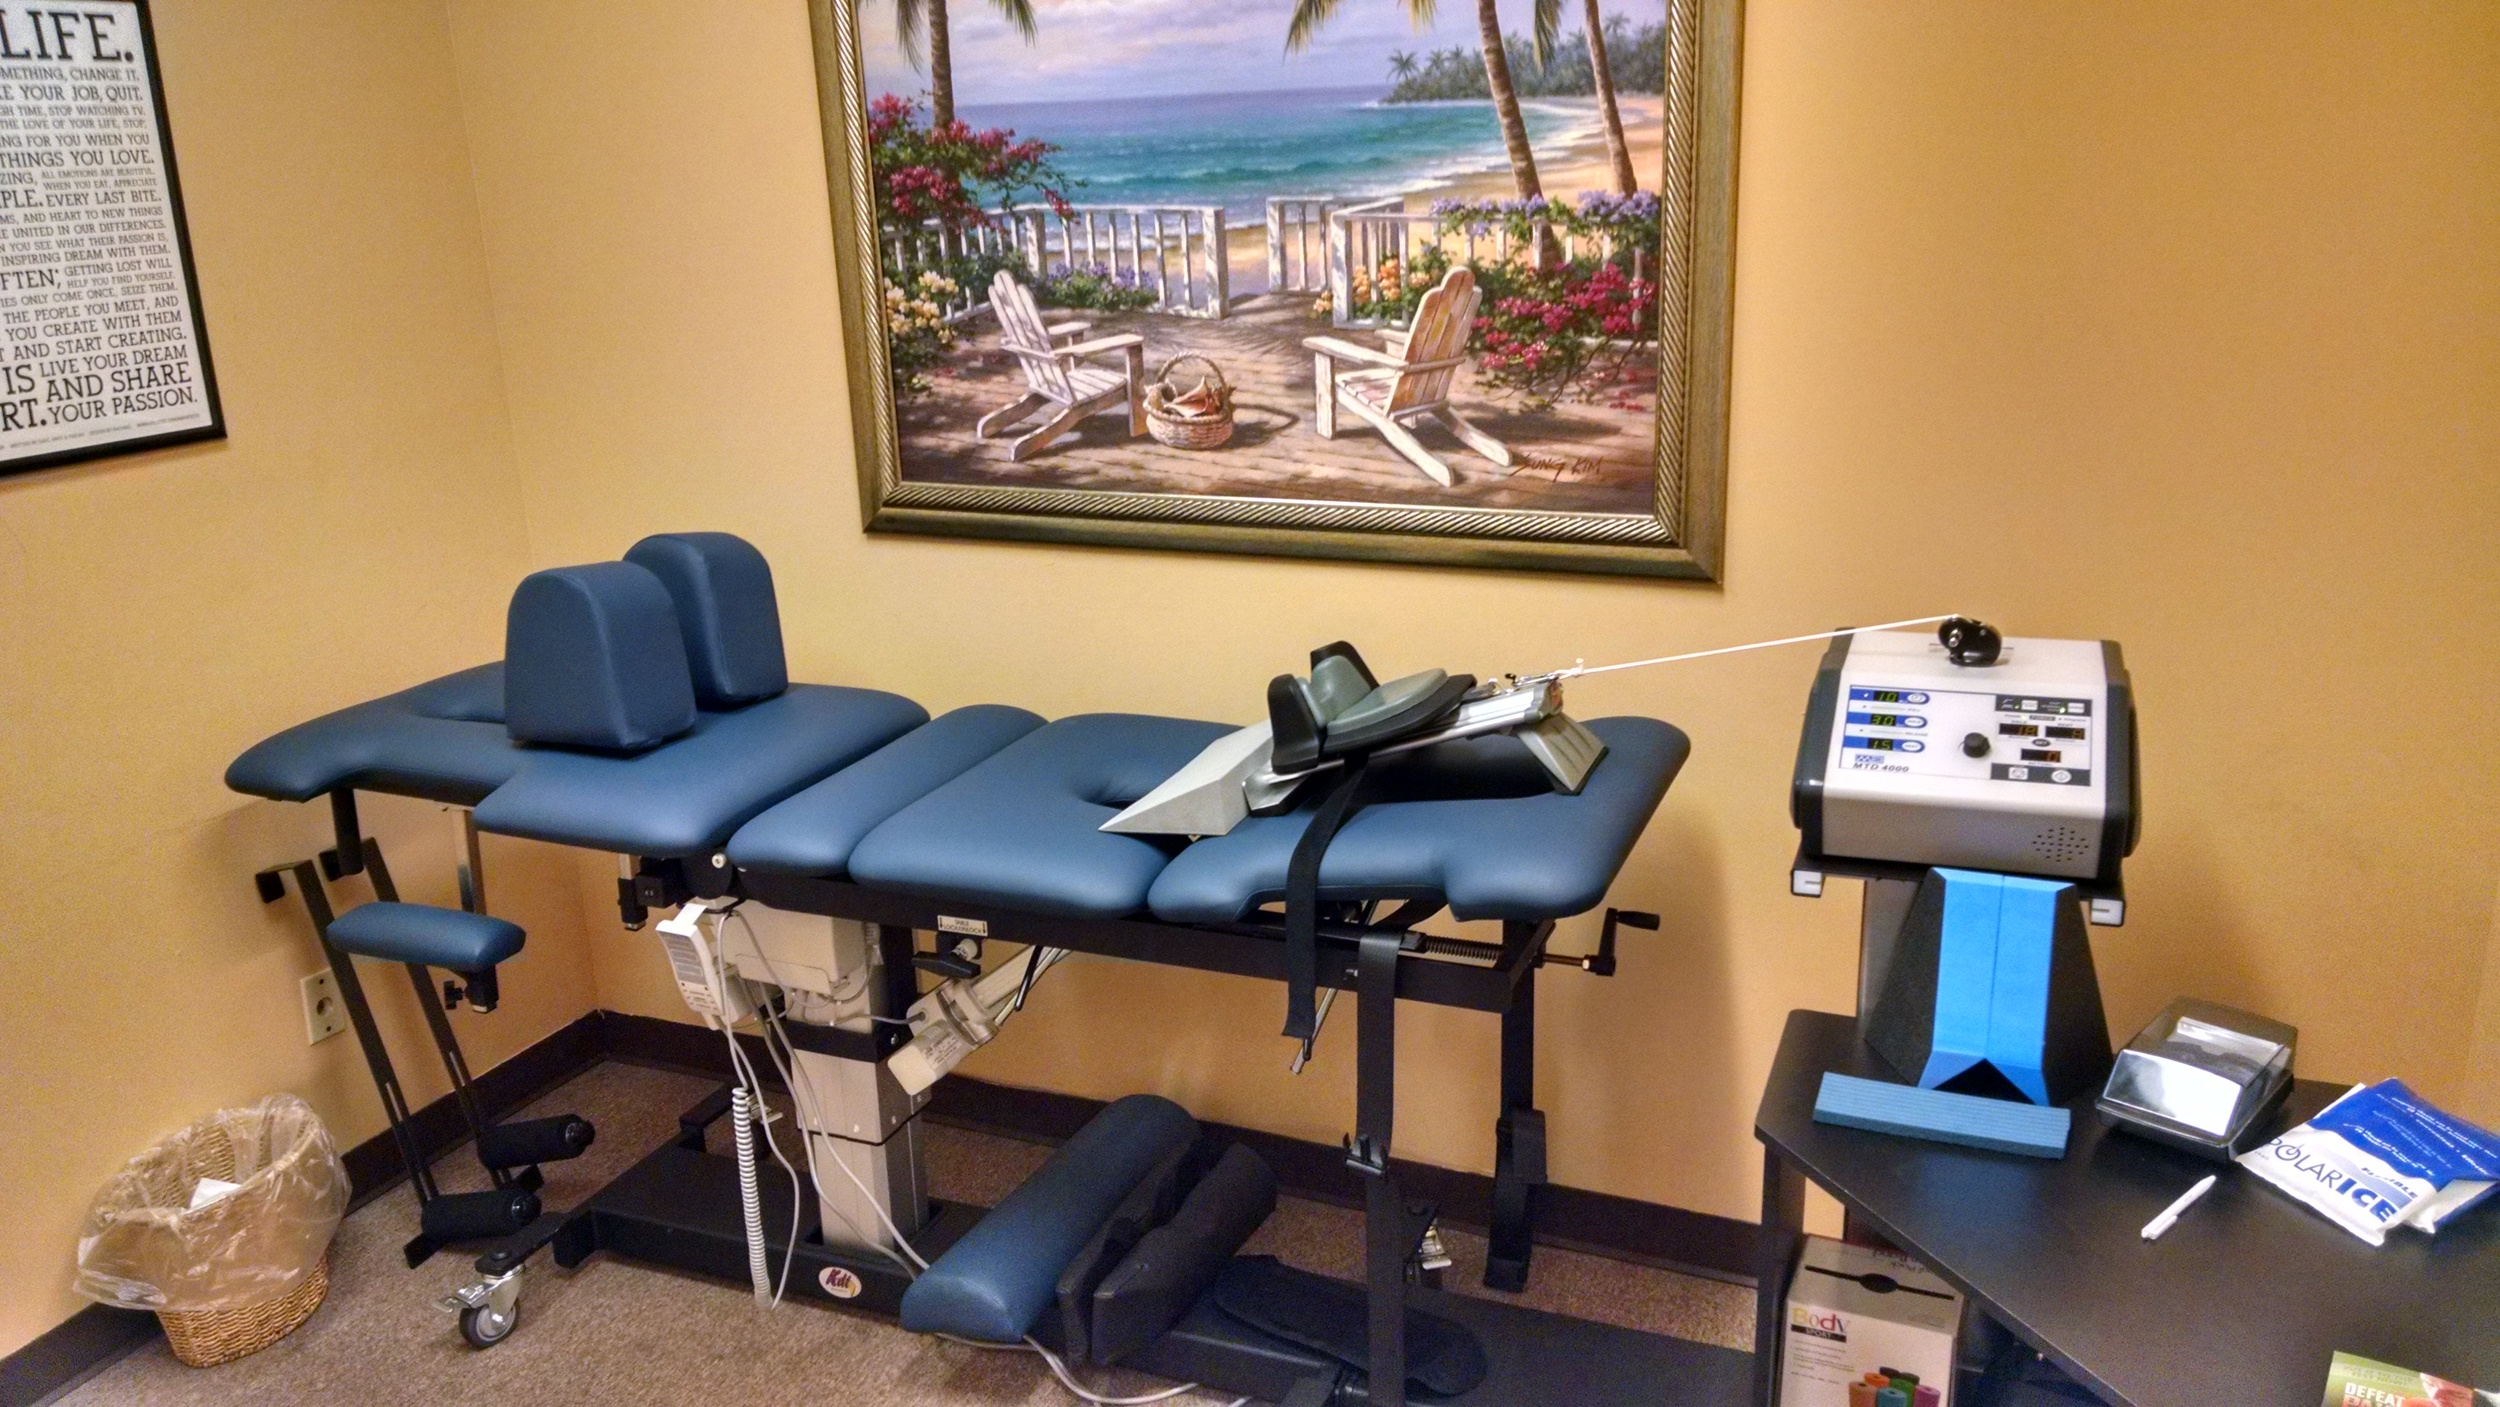 This is the setup for neck traction. The table can also be re-arranged for low back and mid back traction.